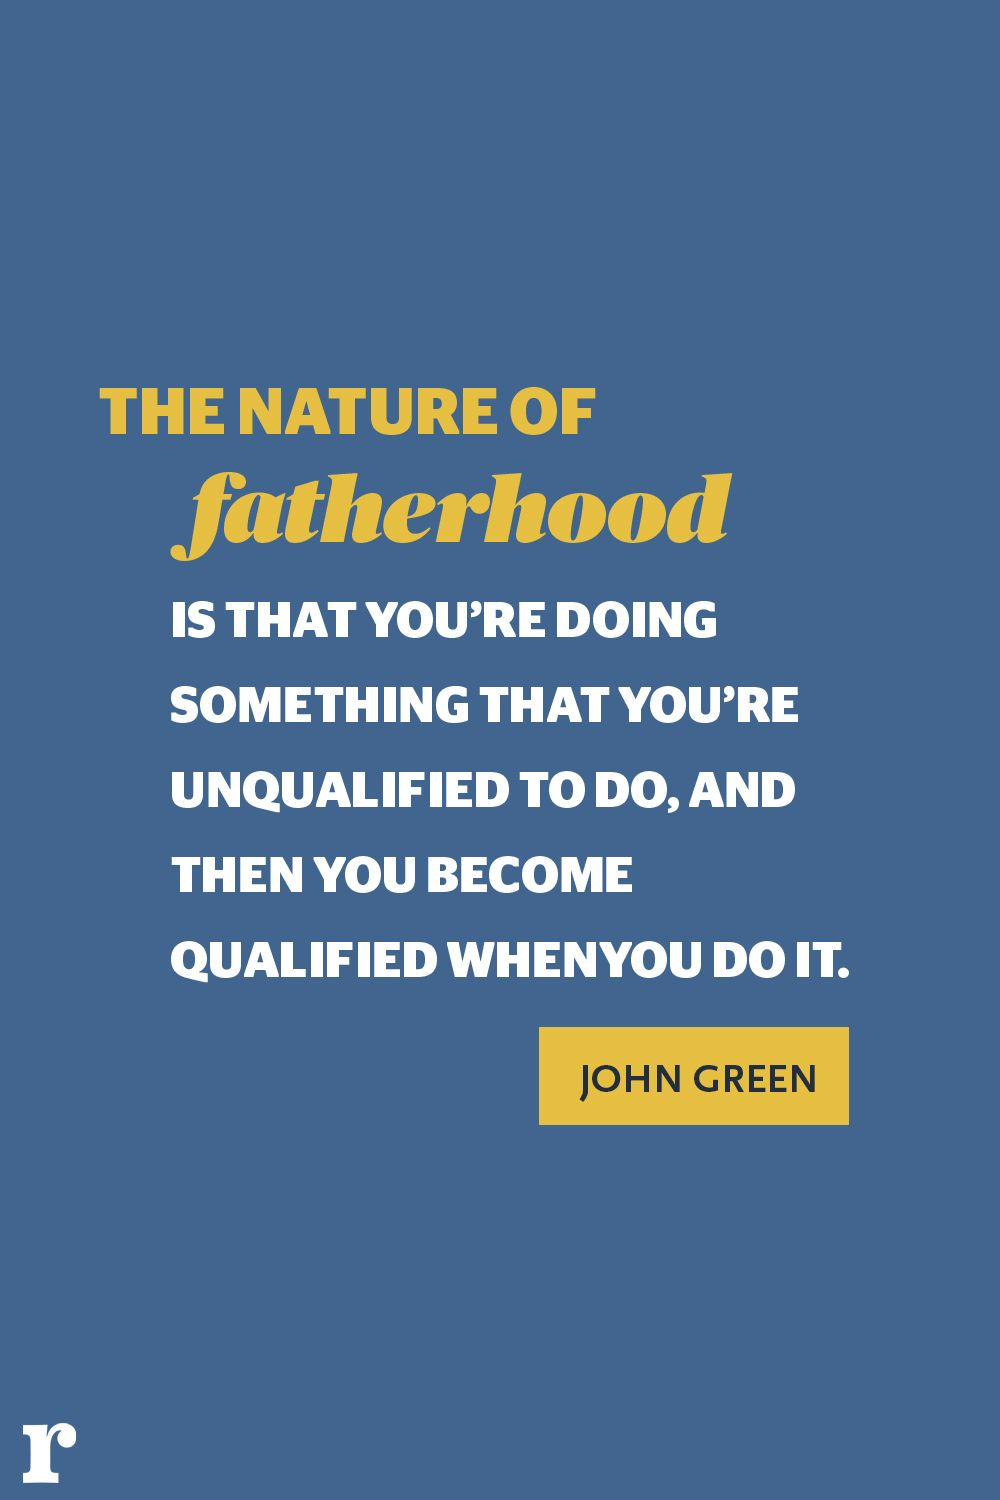 Image of: Happy 15 Best Fathers Day Quotes To Share With Dad Meaningful Fatherhood Quotes Pinterest 15 Best Fathers Day Quotes To Share With Dad Meaningful